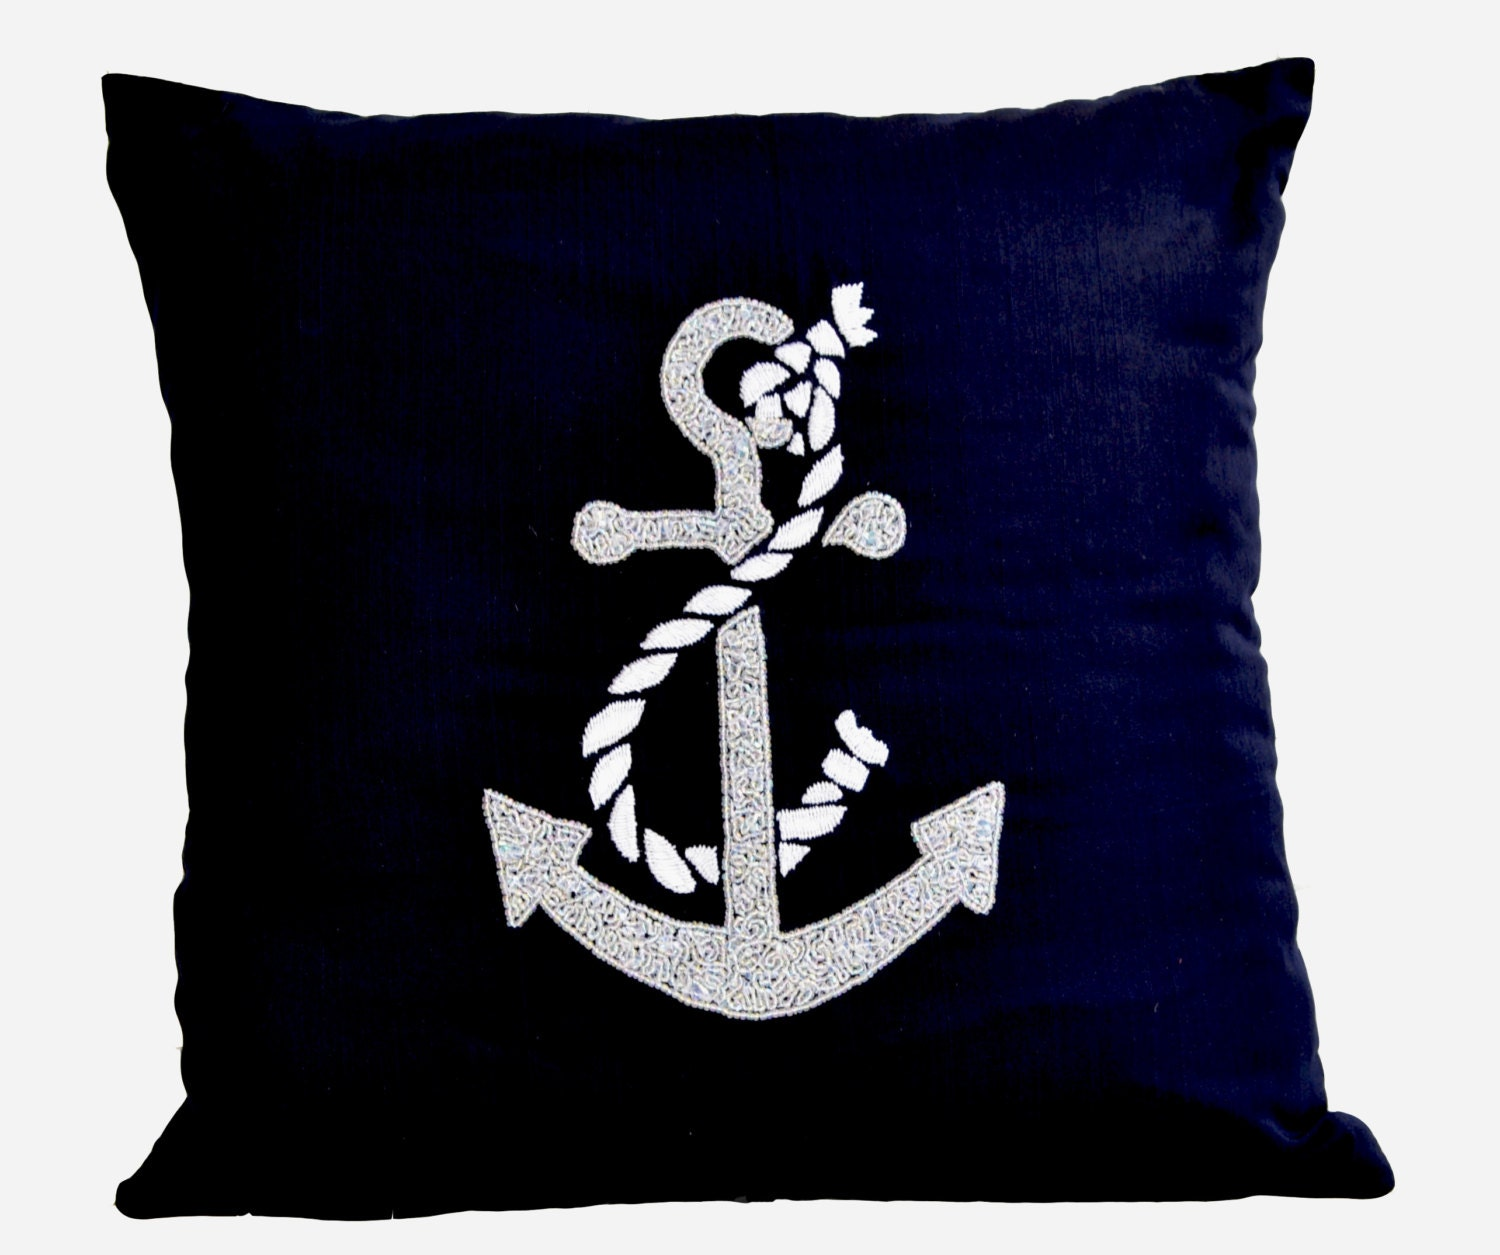 Throw Pillow Covers Nautical : Anchor Decorative Throw Pillows Cushion Cover Nautical Ocean